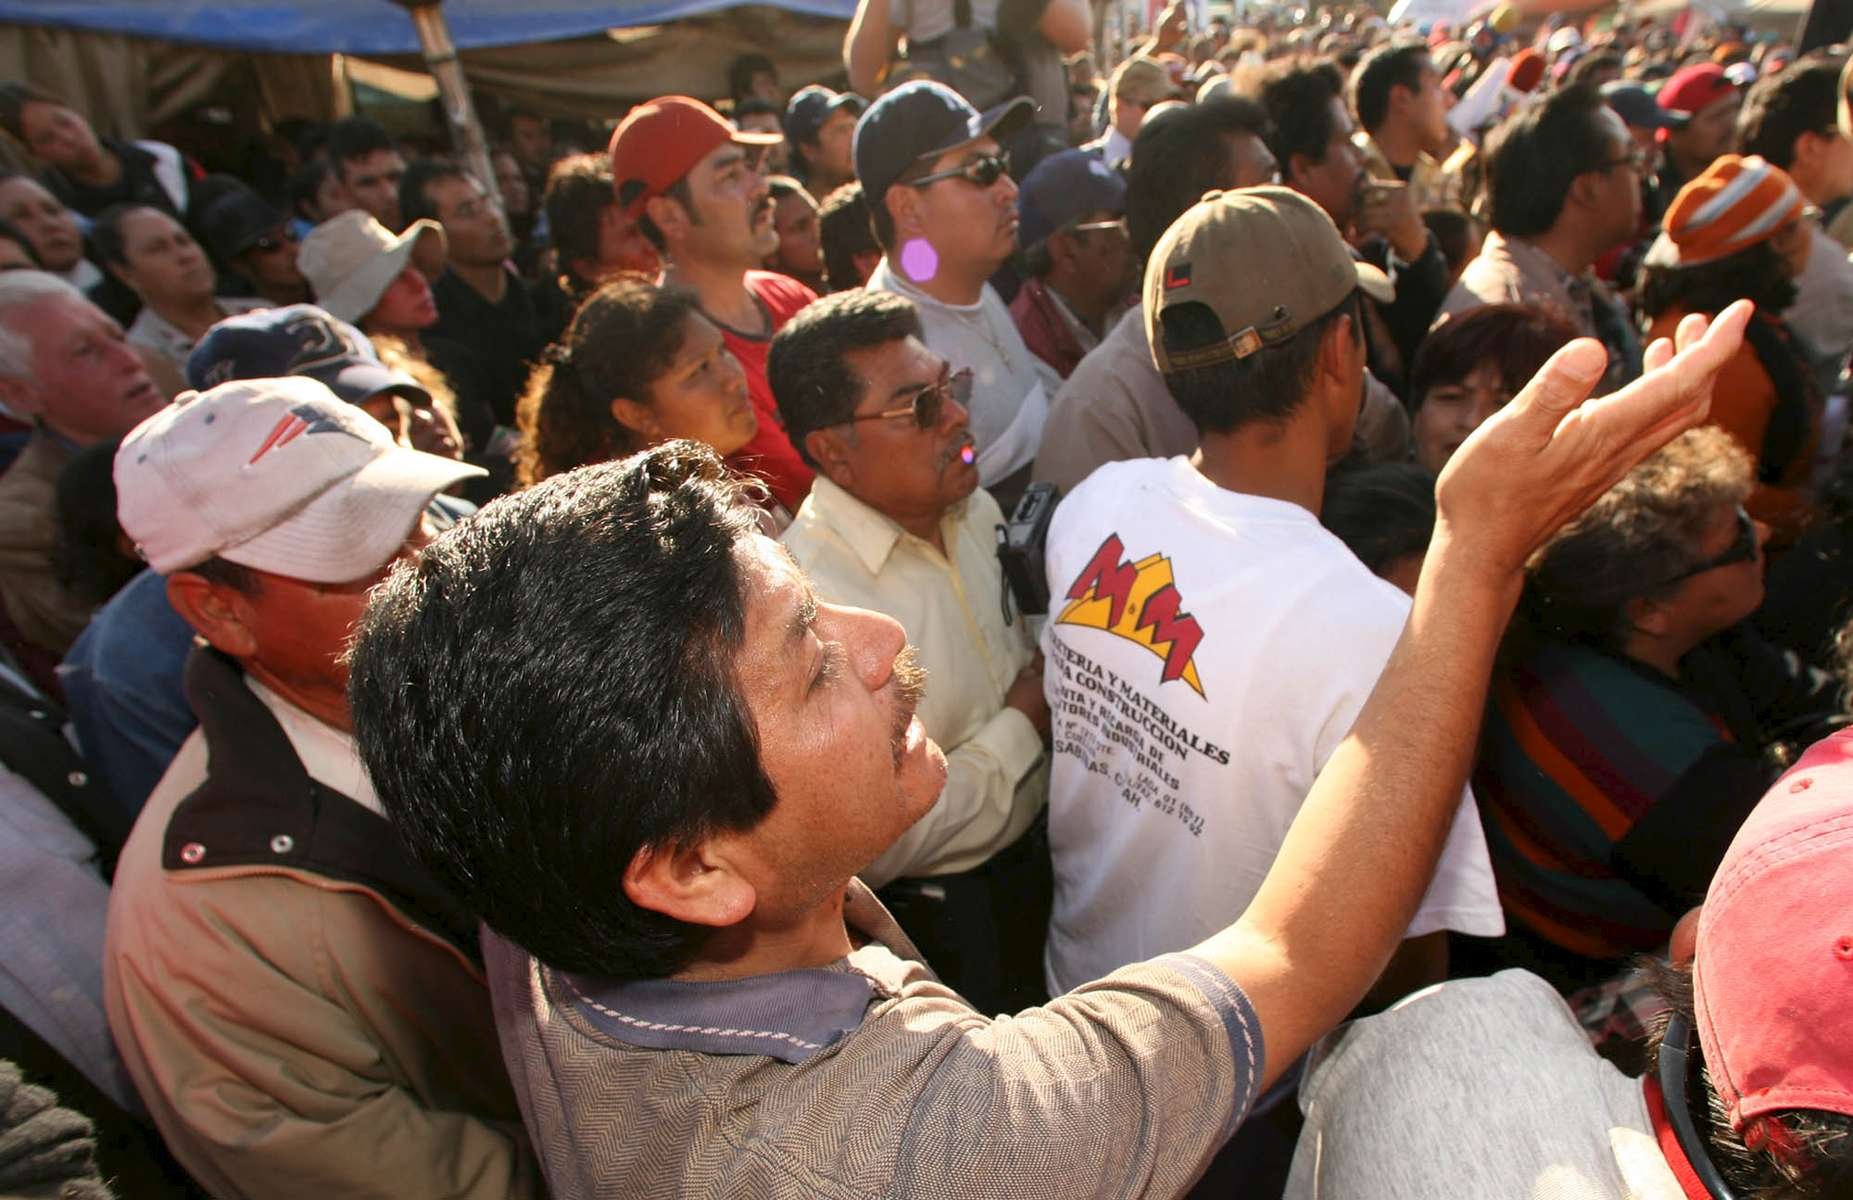 A man who did not want to be identified screamed complaints to officials during a press conference in front of the Pasta de Conchos coal mine in San Juan de Sabinas in the Mexican state of Coahuila Tuesday. Family members waited outside the Pasta de Conchos coal mine Tuesday. In the Early morning on Sunday 65 miners were trapped 163 meters below ground after an explosion.Sharón Steinmann / Houston Chronicle